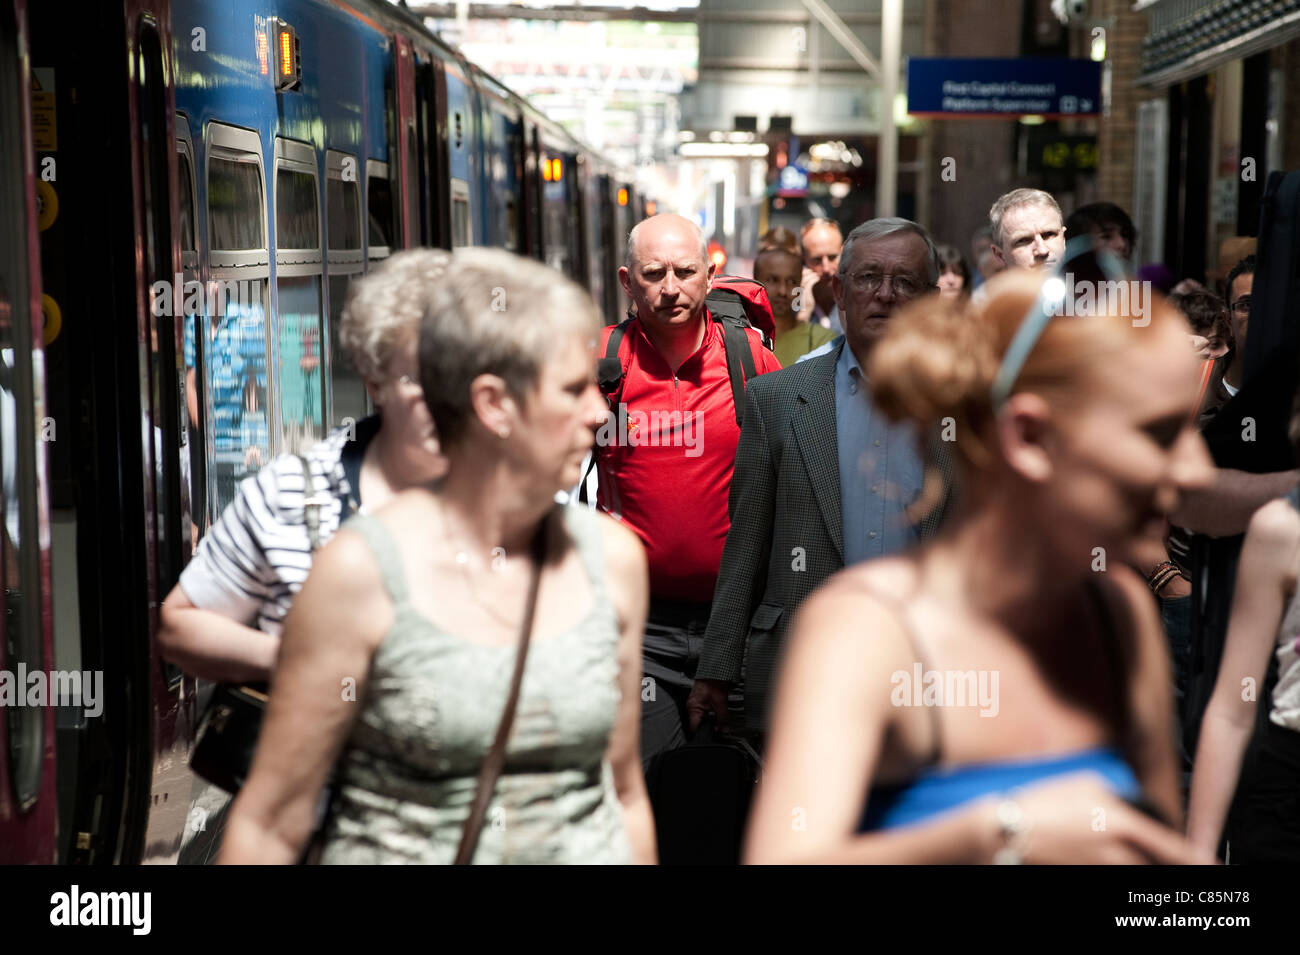 Passengers getting off of a train at a busy railway station in England. - Stock Image